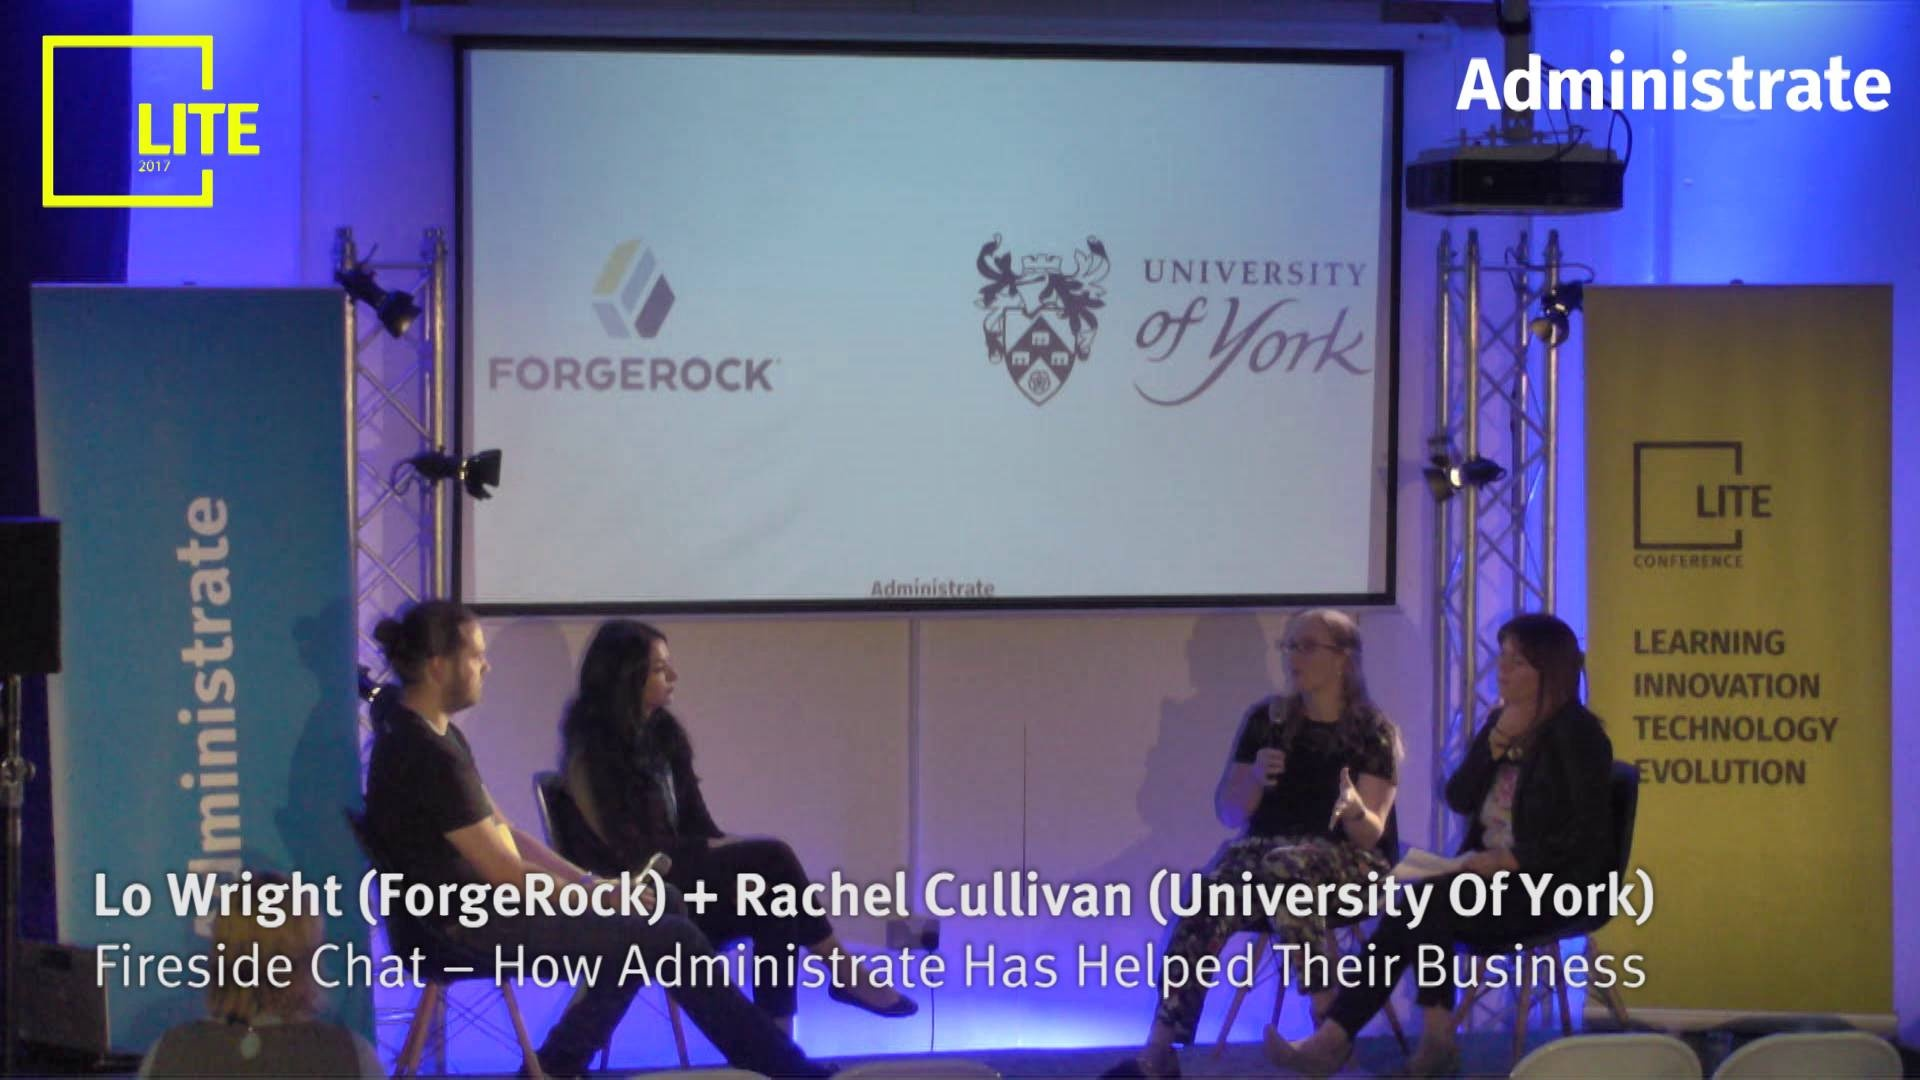 Fireside Chat – How Administrate Has Helped Their Business [Lo Wright & Rachel Cullivan